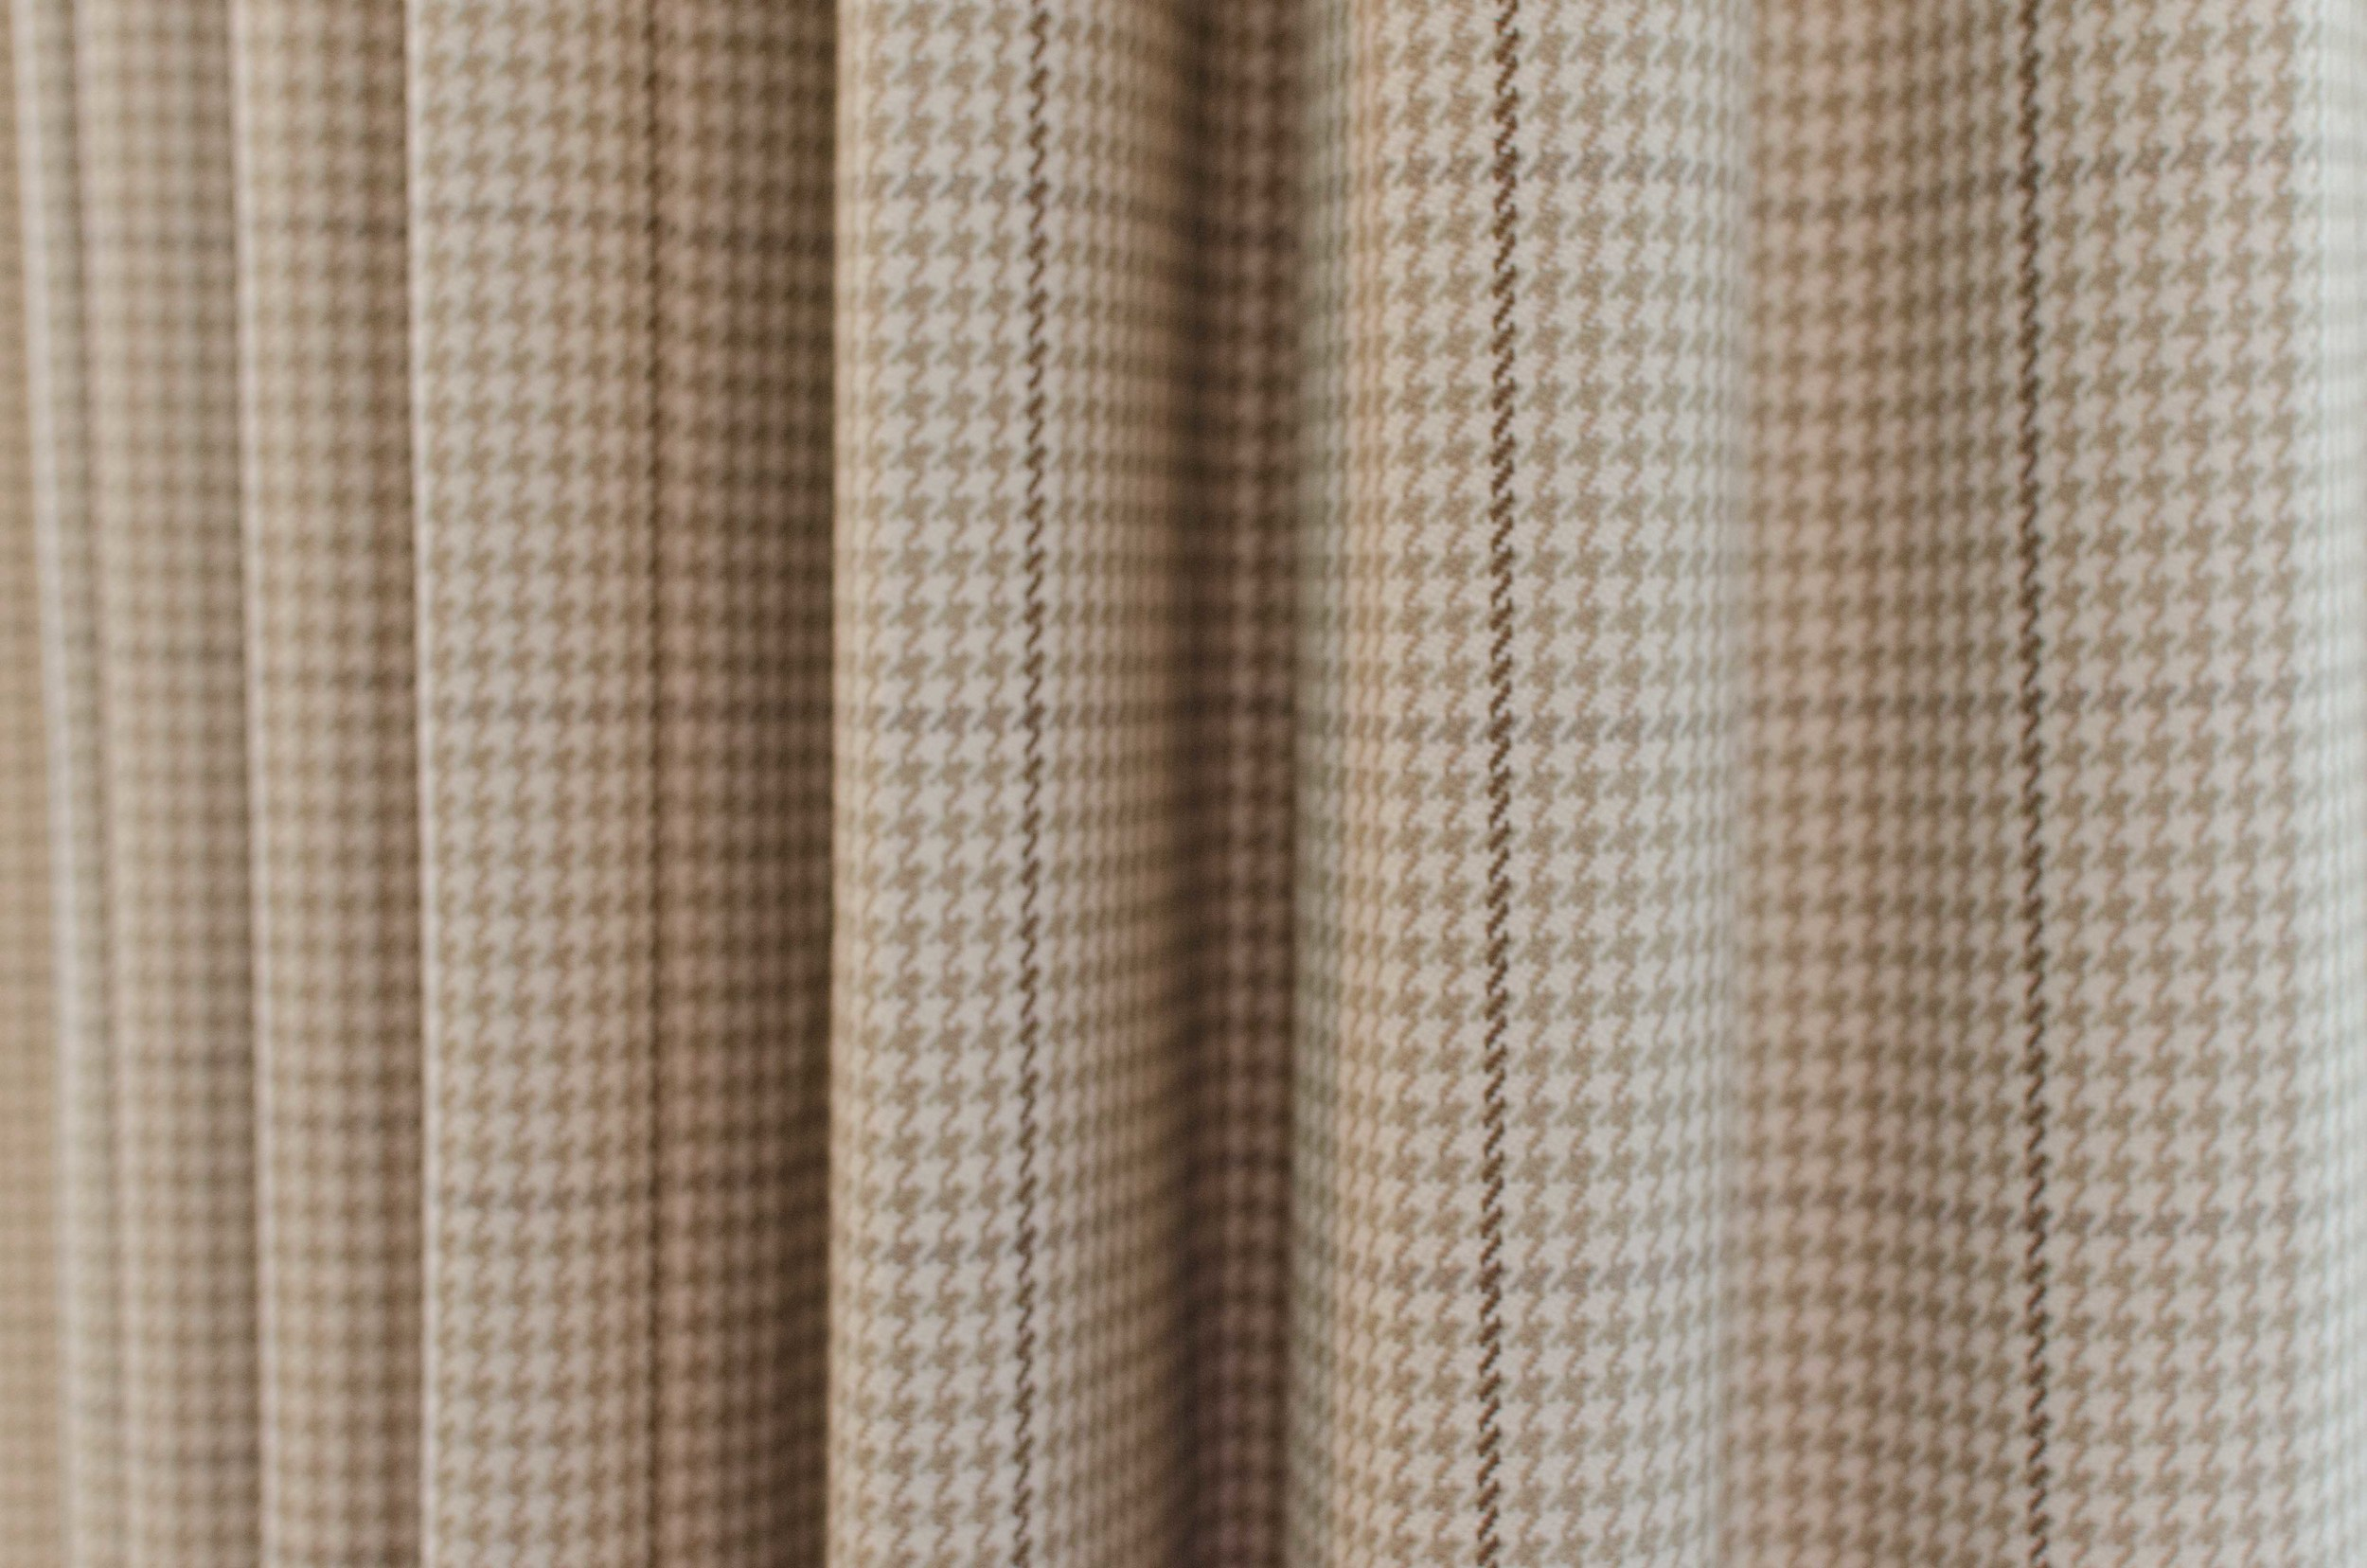 Classic tan houndstooth check fabric pattern